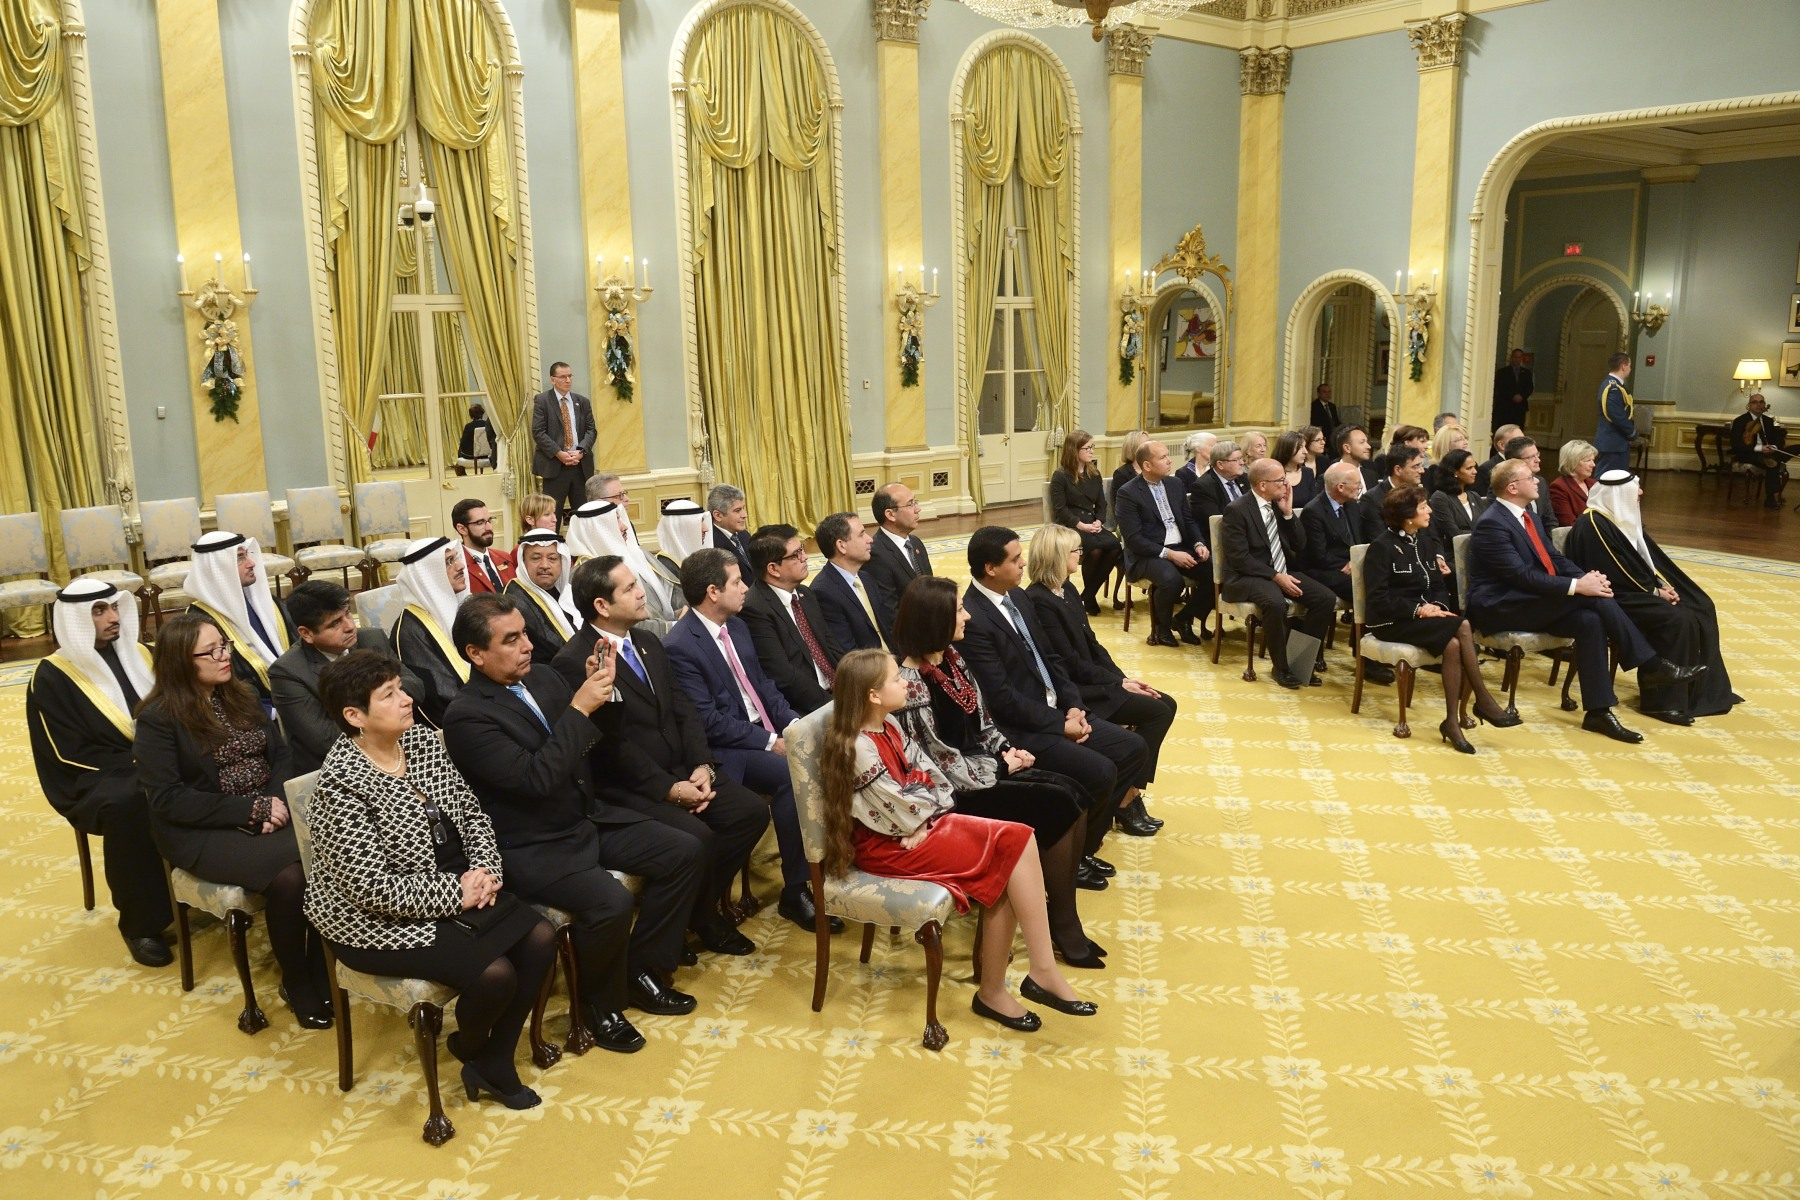 His Excellency the Right Honourable David Johnston, Governor General of Canada, received the letters of credence of three new heads of mission during a ceremony at Rideau Hall on December 12, 2015.